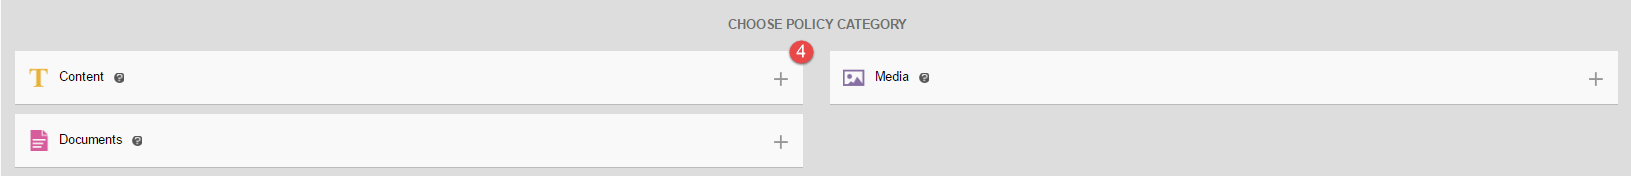 Categories of policy